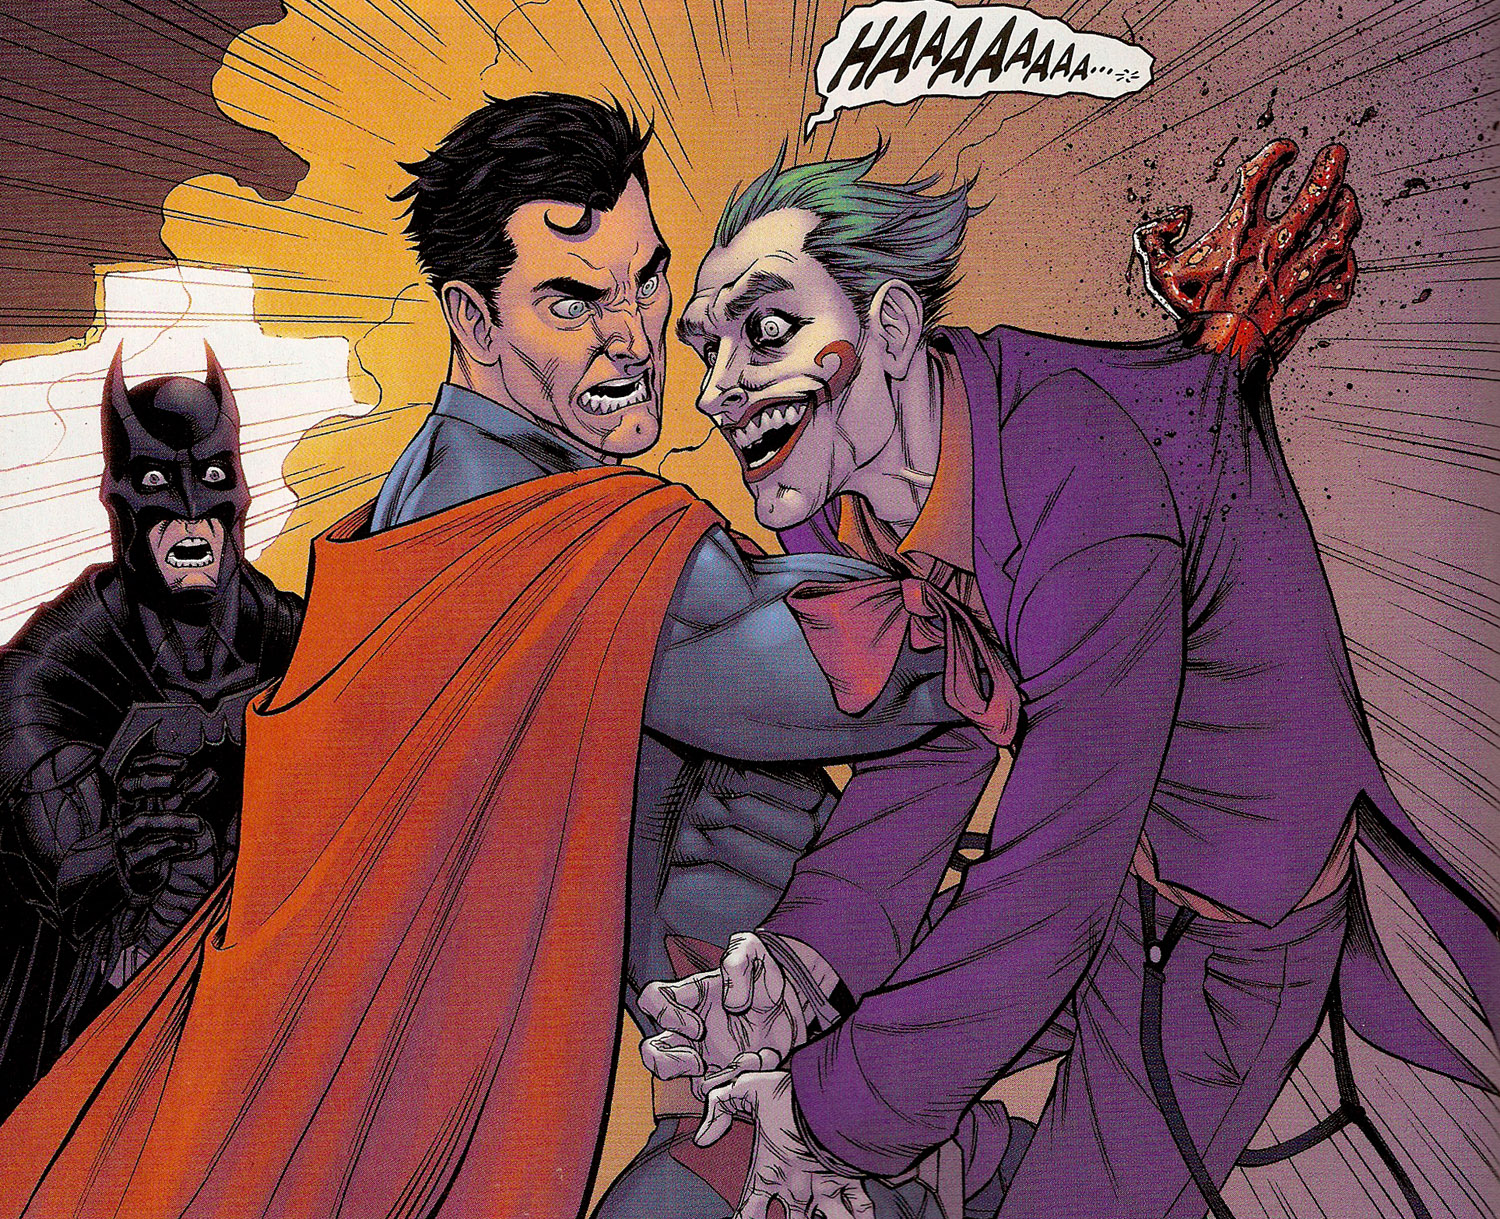 superman vs joker.jpg